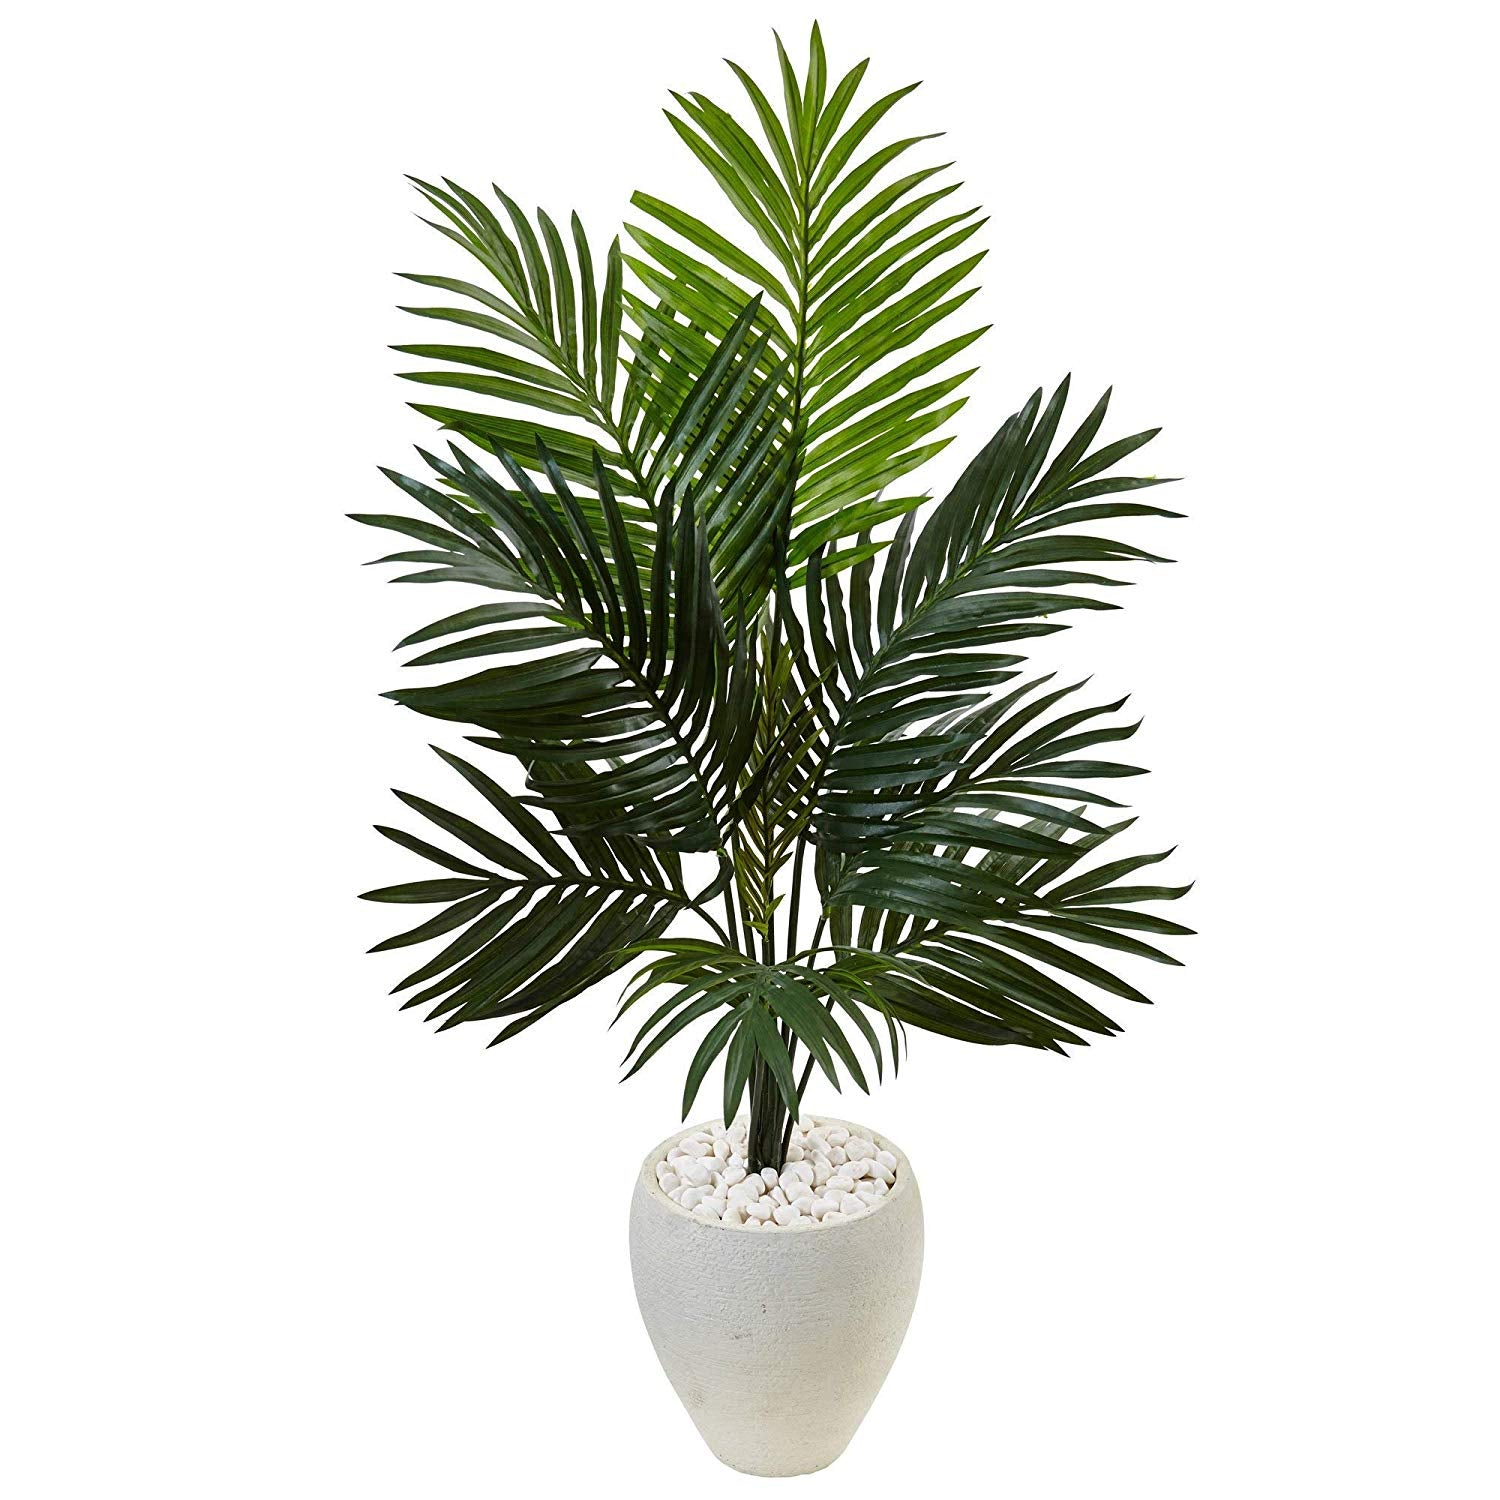 Green Kentia Palm Tree Artificial Plants Oval Planter Tropical Indoor Palmtree Howea Forsteriana Botanical Floral Arecaeae Beachscape Oasis Cottage 4